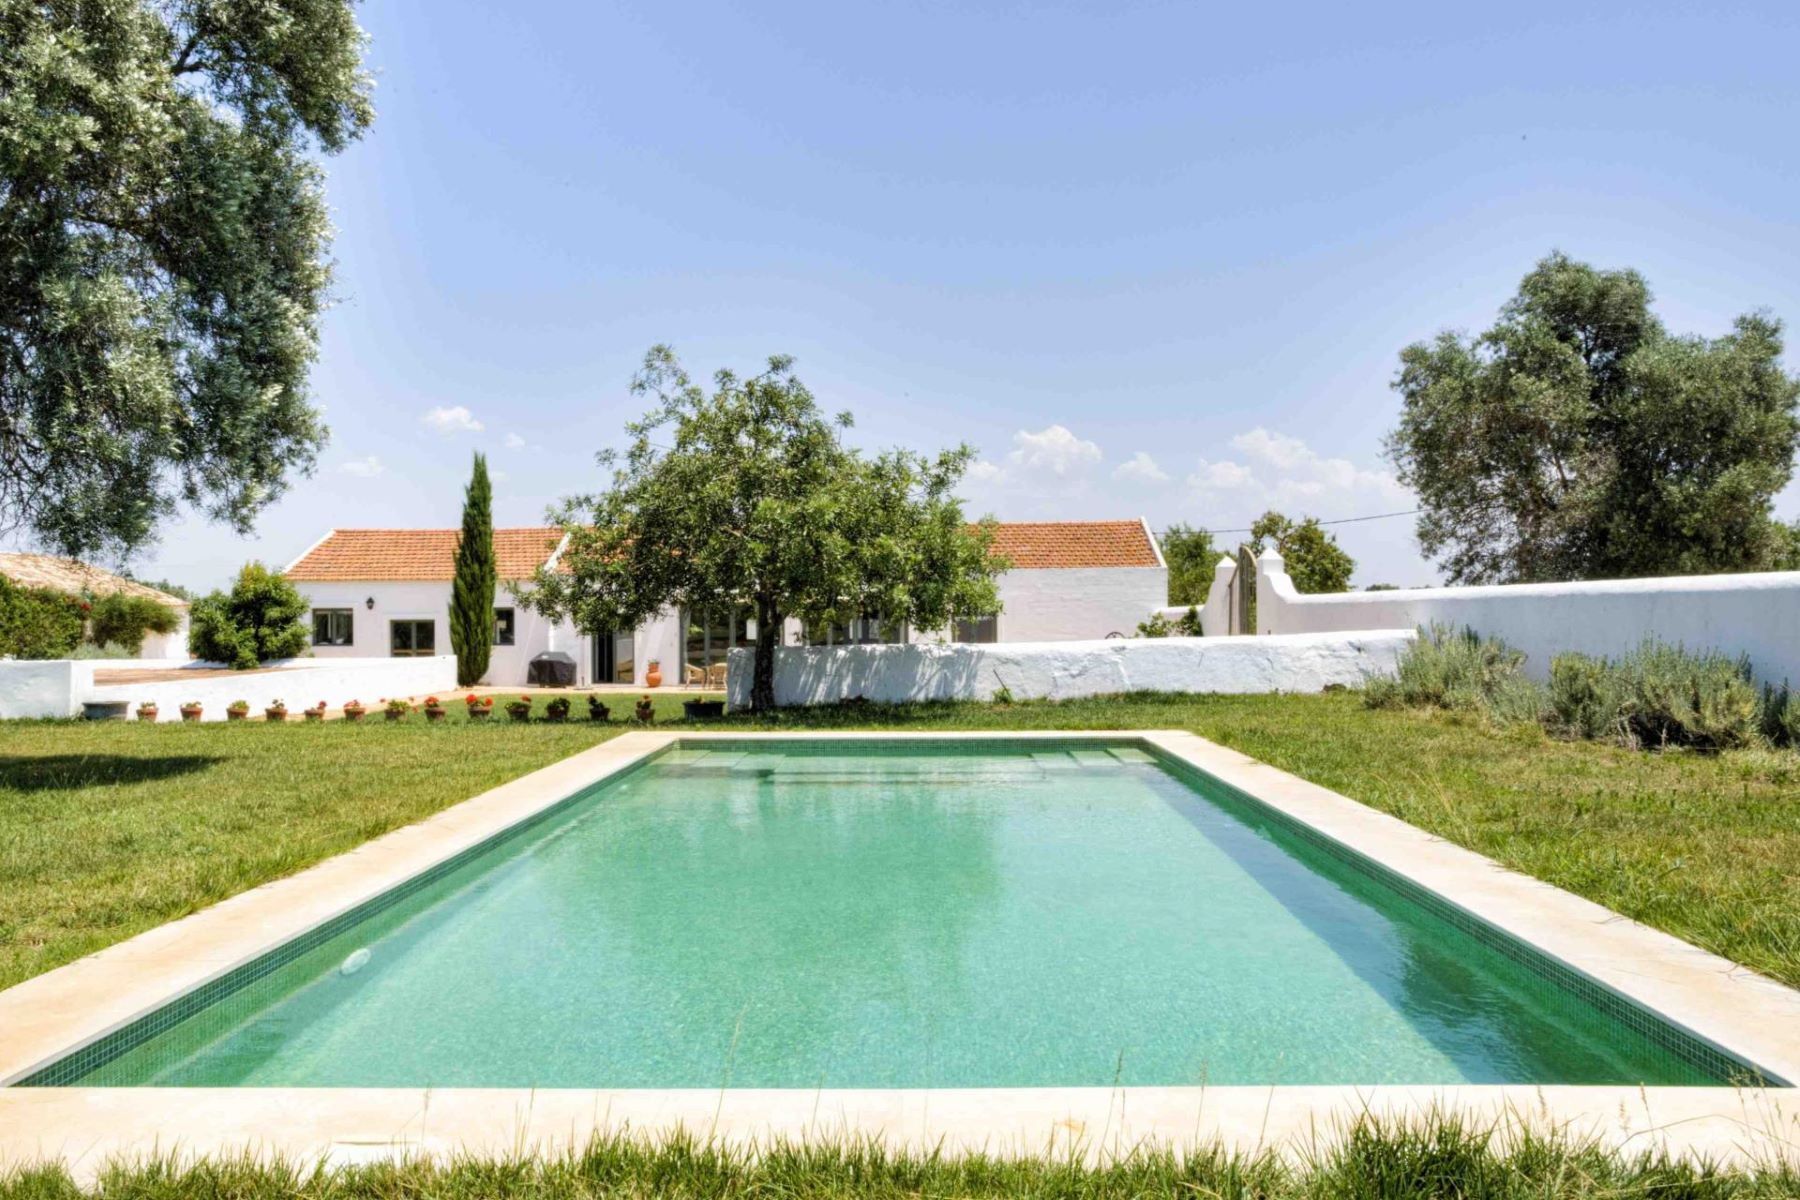 Farm / Ranch / Plantation for Sale at Country Estate, 10 bedrooms, for Sale Lagoa, Algarve Portugal